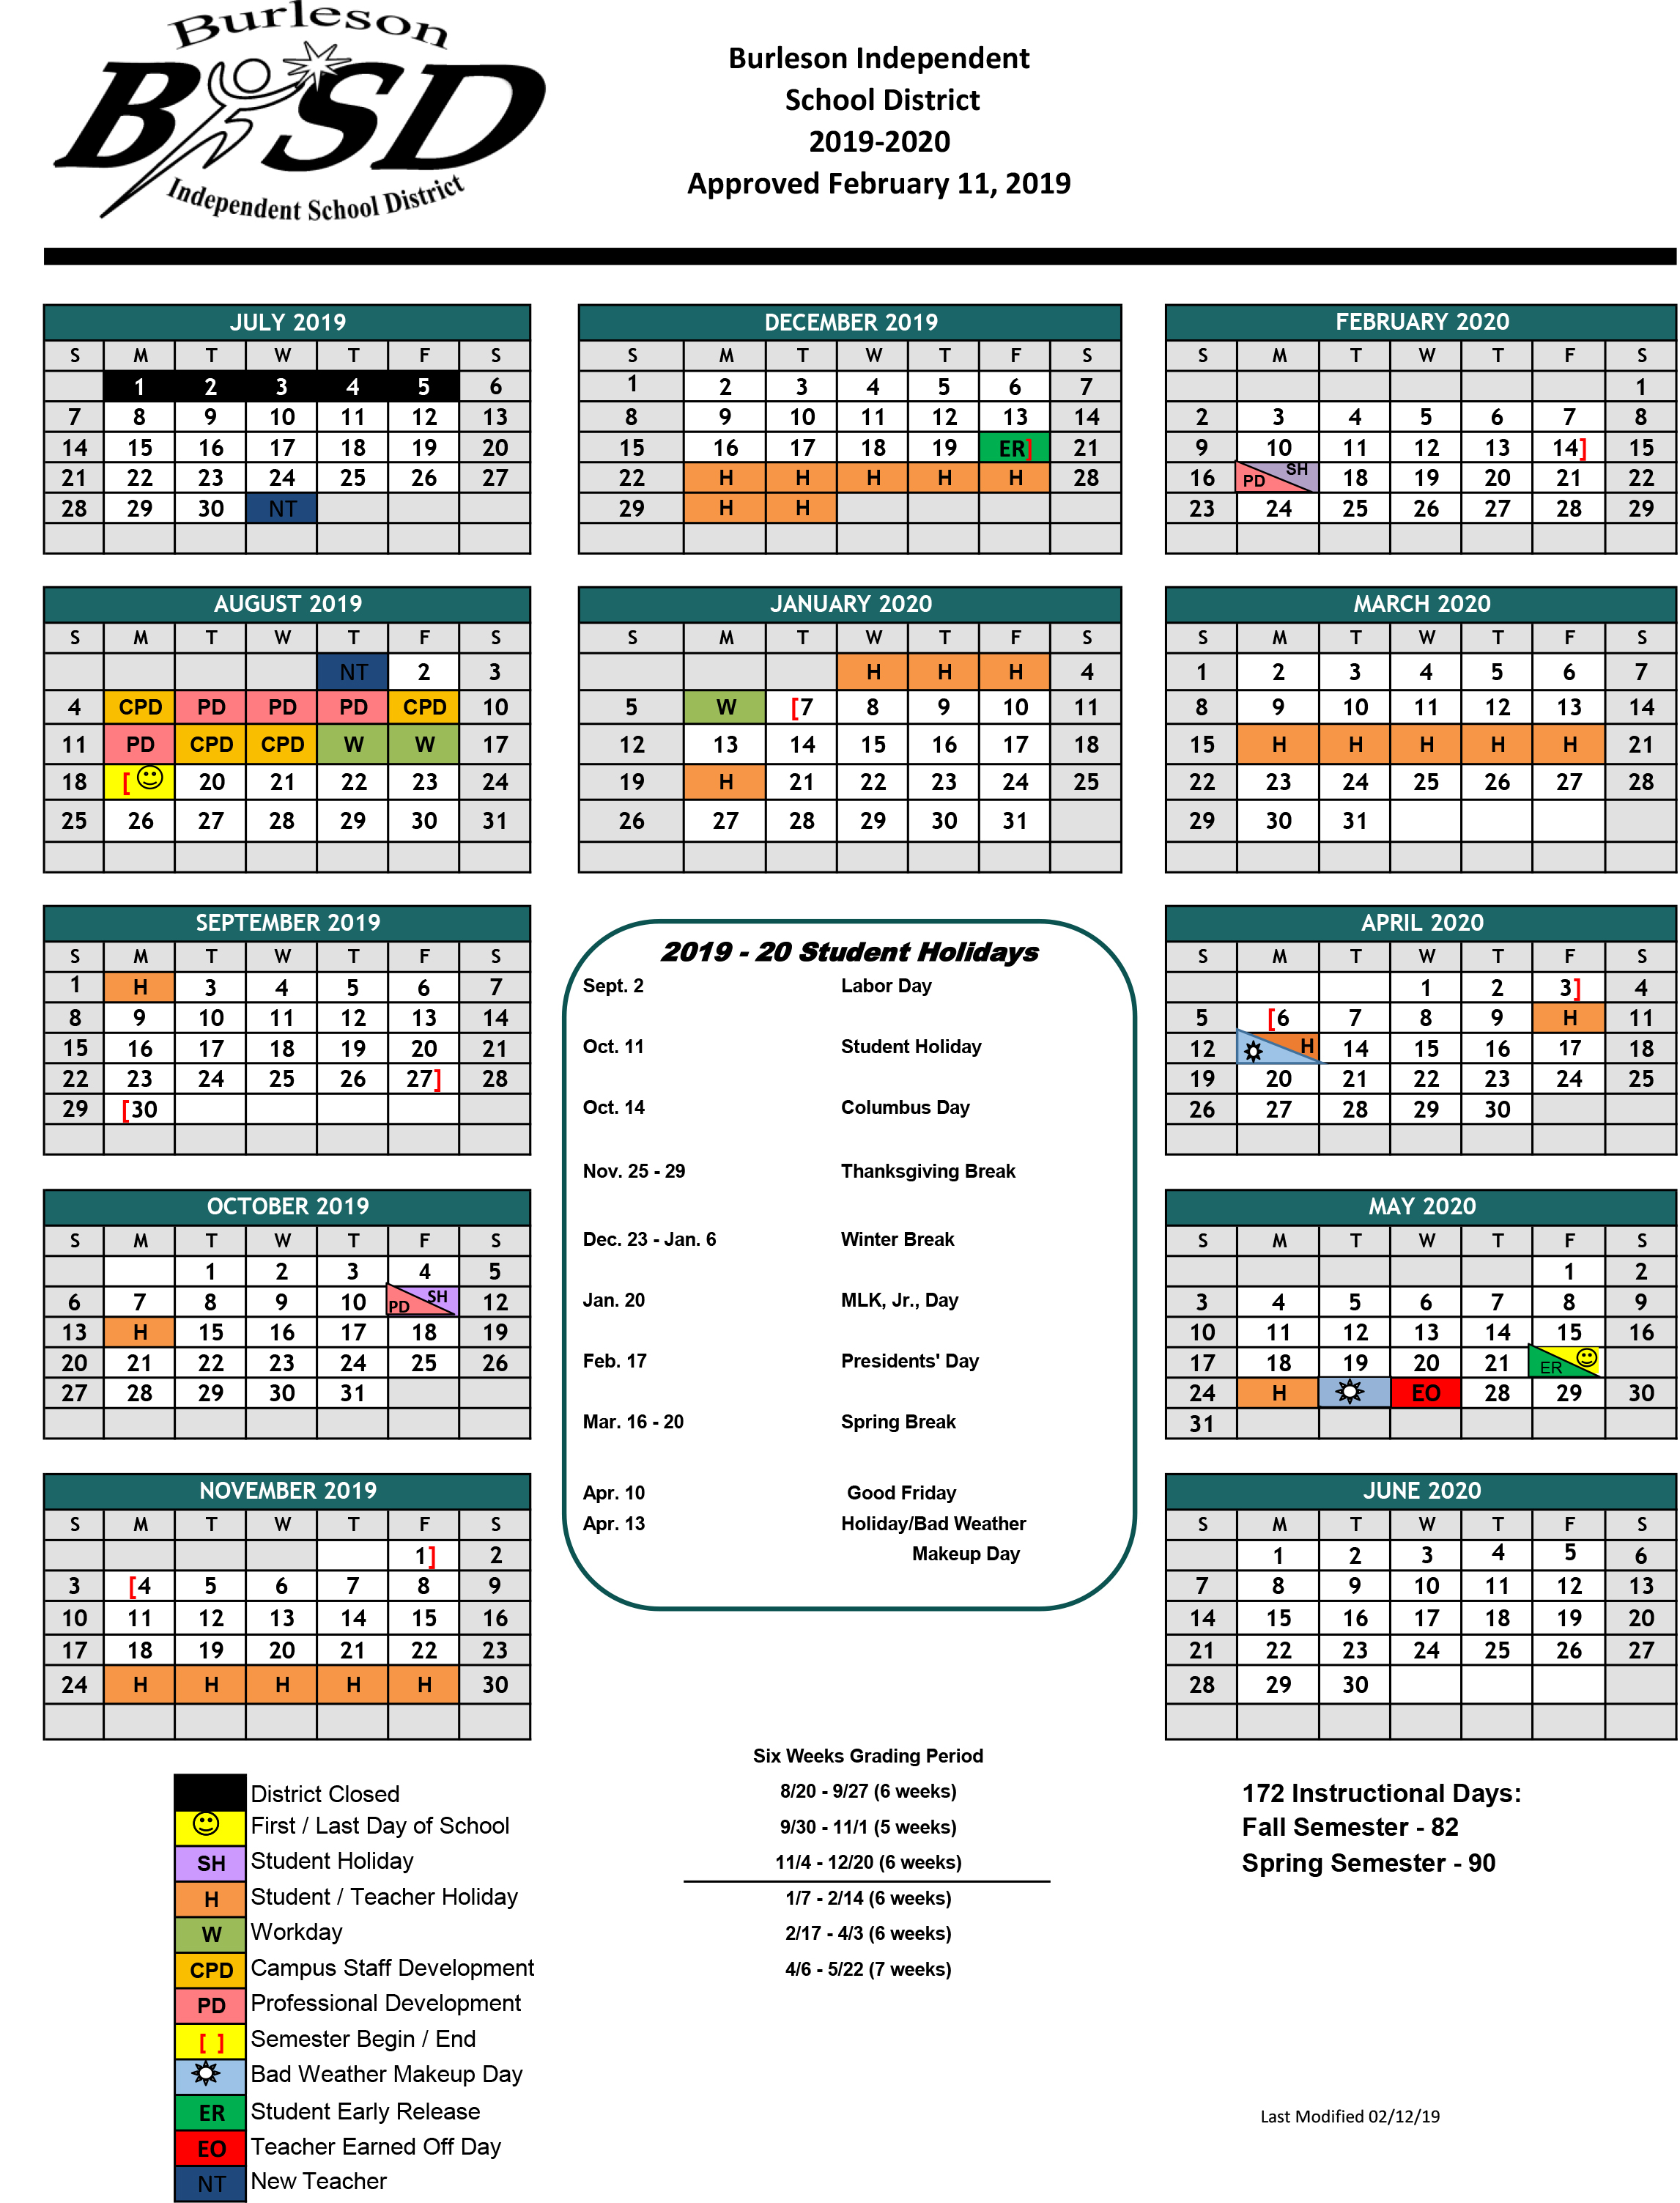 Burleson Isd Student Calendar For 2019 20 School Year Approved For Brownsville Isd Academic Calendar